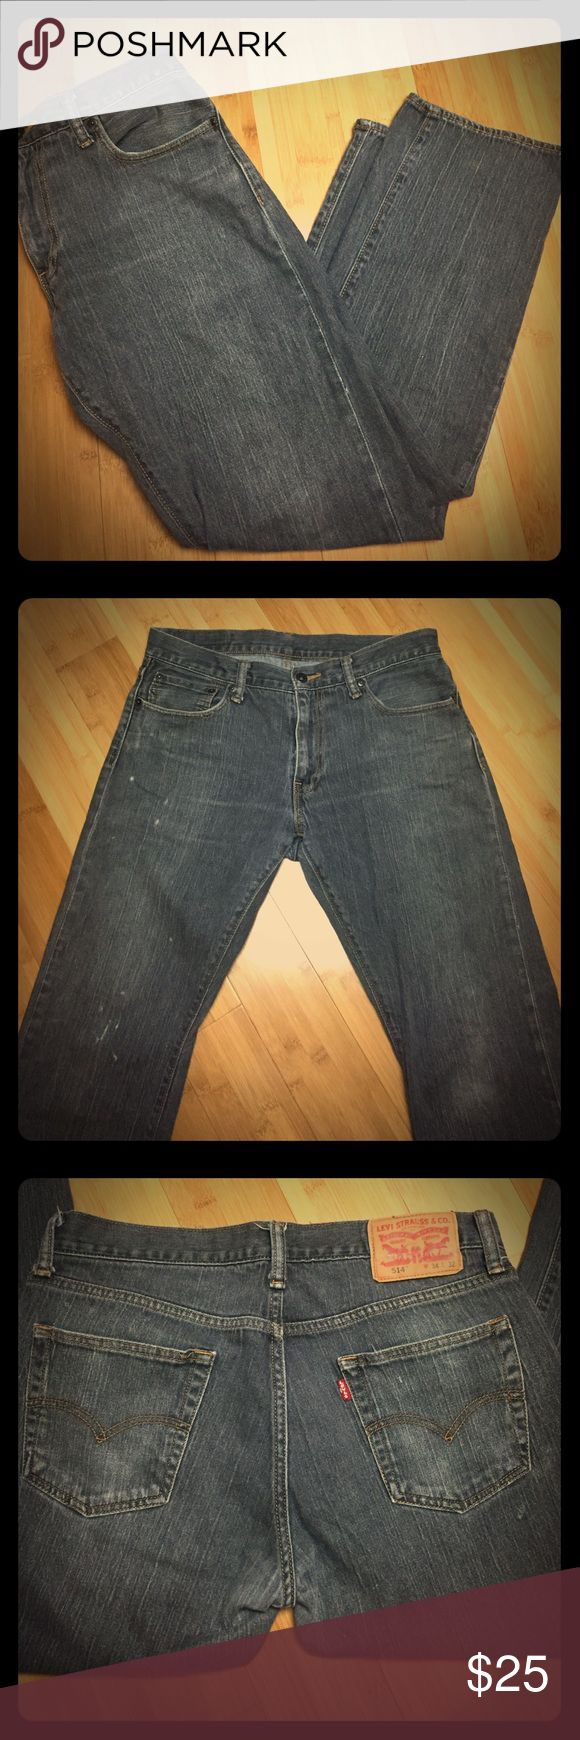 Men's Levi's 514 Straight Fit Jeans Men's Levi's 514 Straight Fit Jeans. These faded dark gray jeans are a favorite classic. These are preloved but well taken care of. Size 34x32 Levi's Jeans Straight